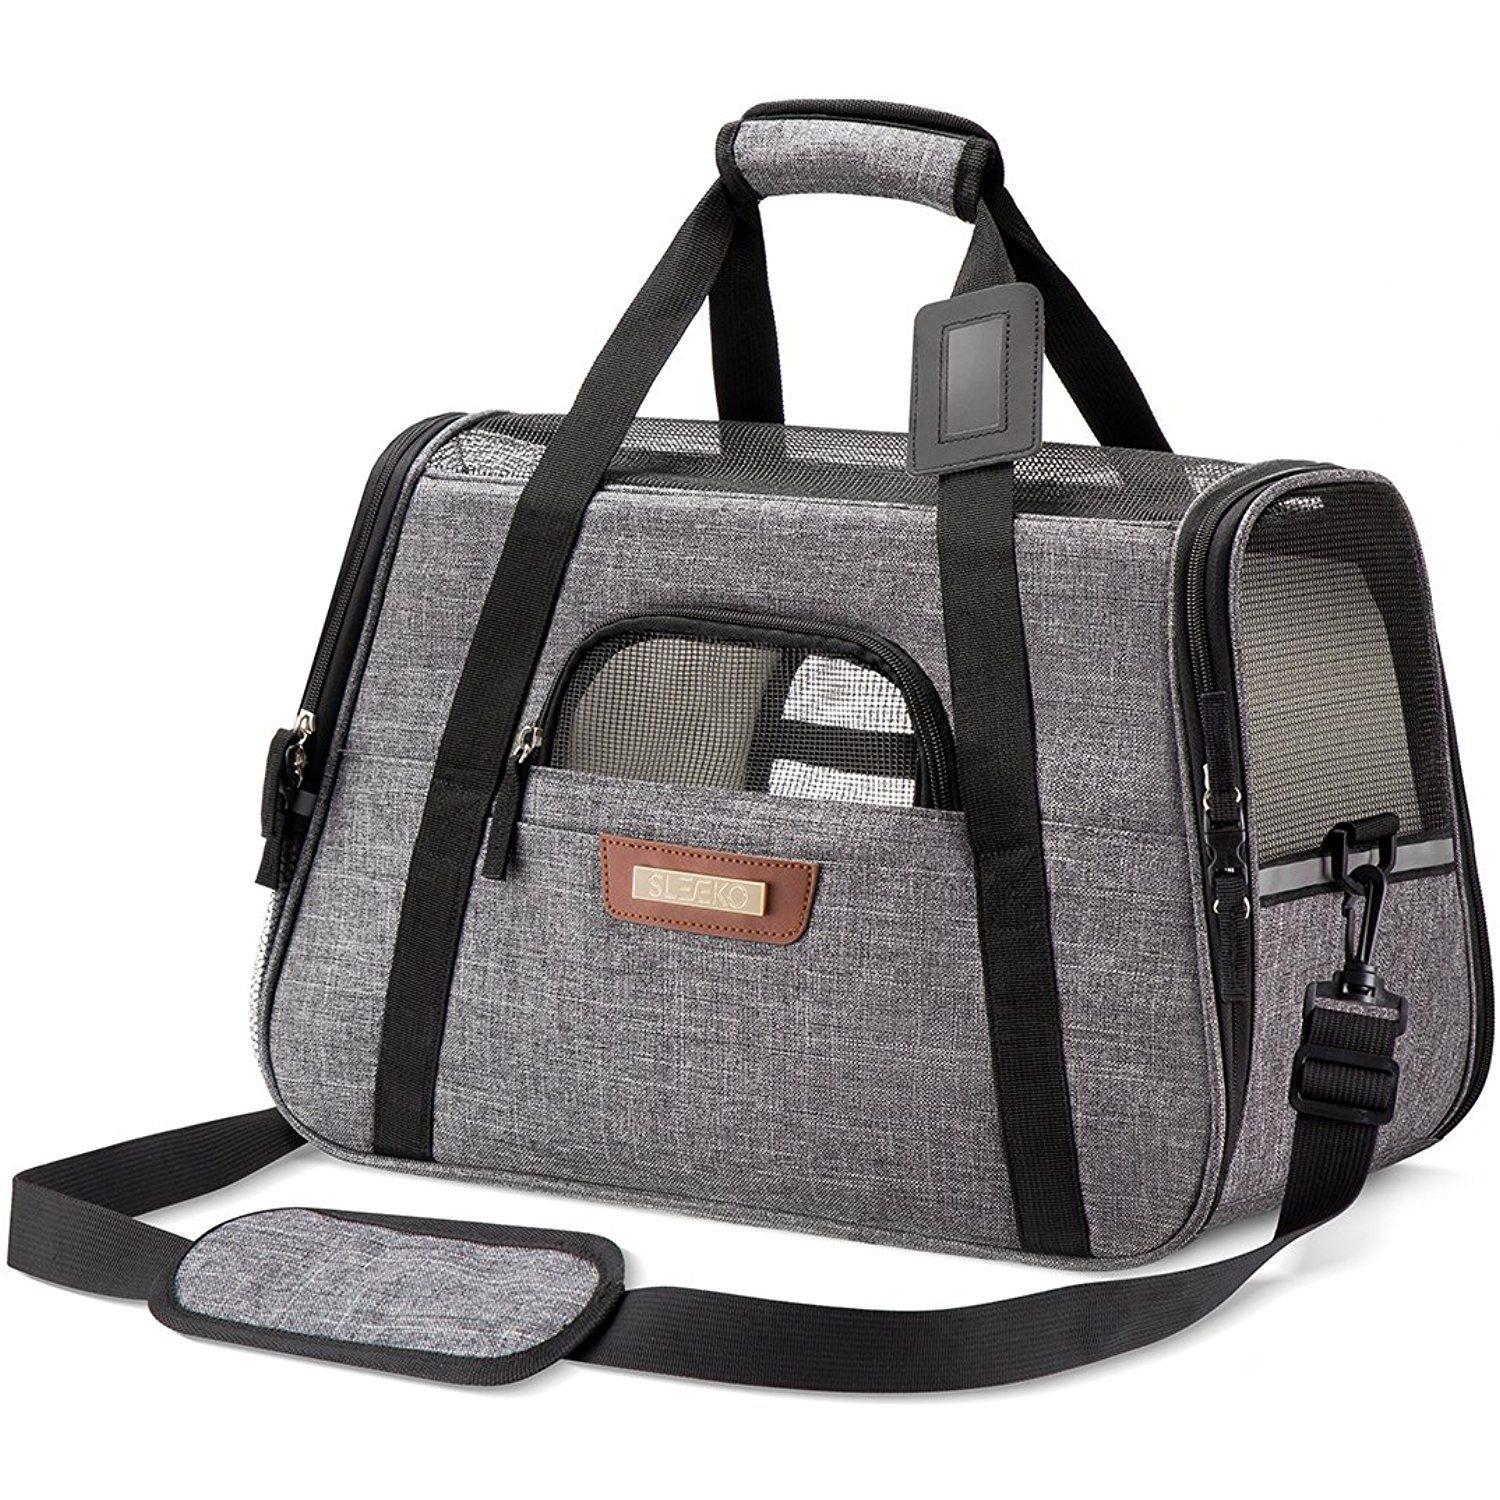 SMALL Premium Pet Carrier Airline Approved Under Seat for